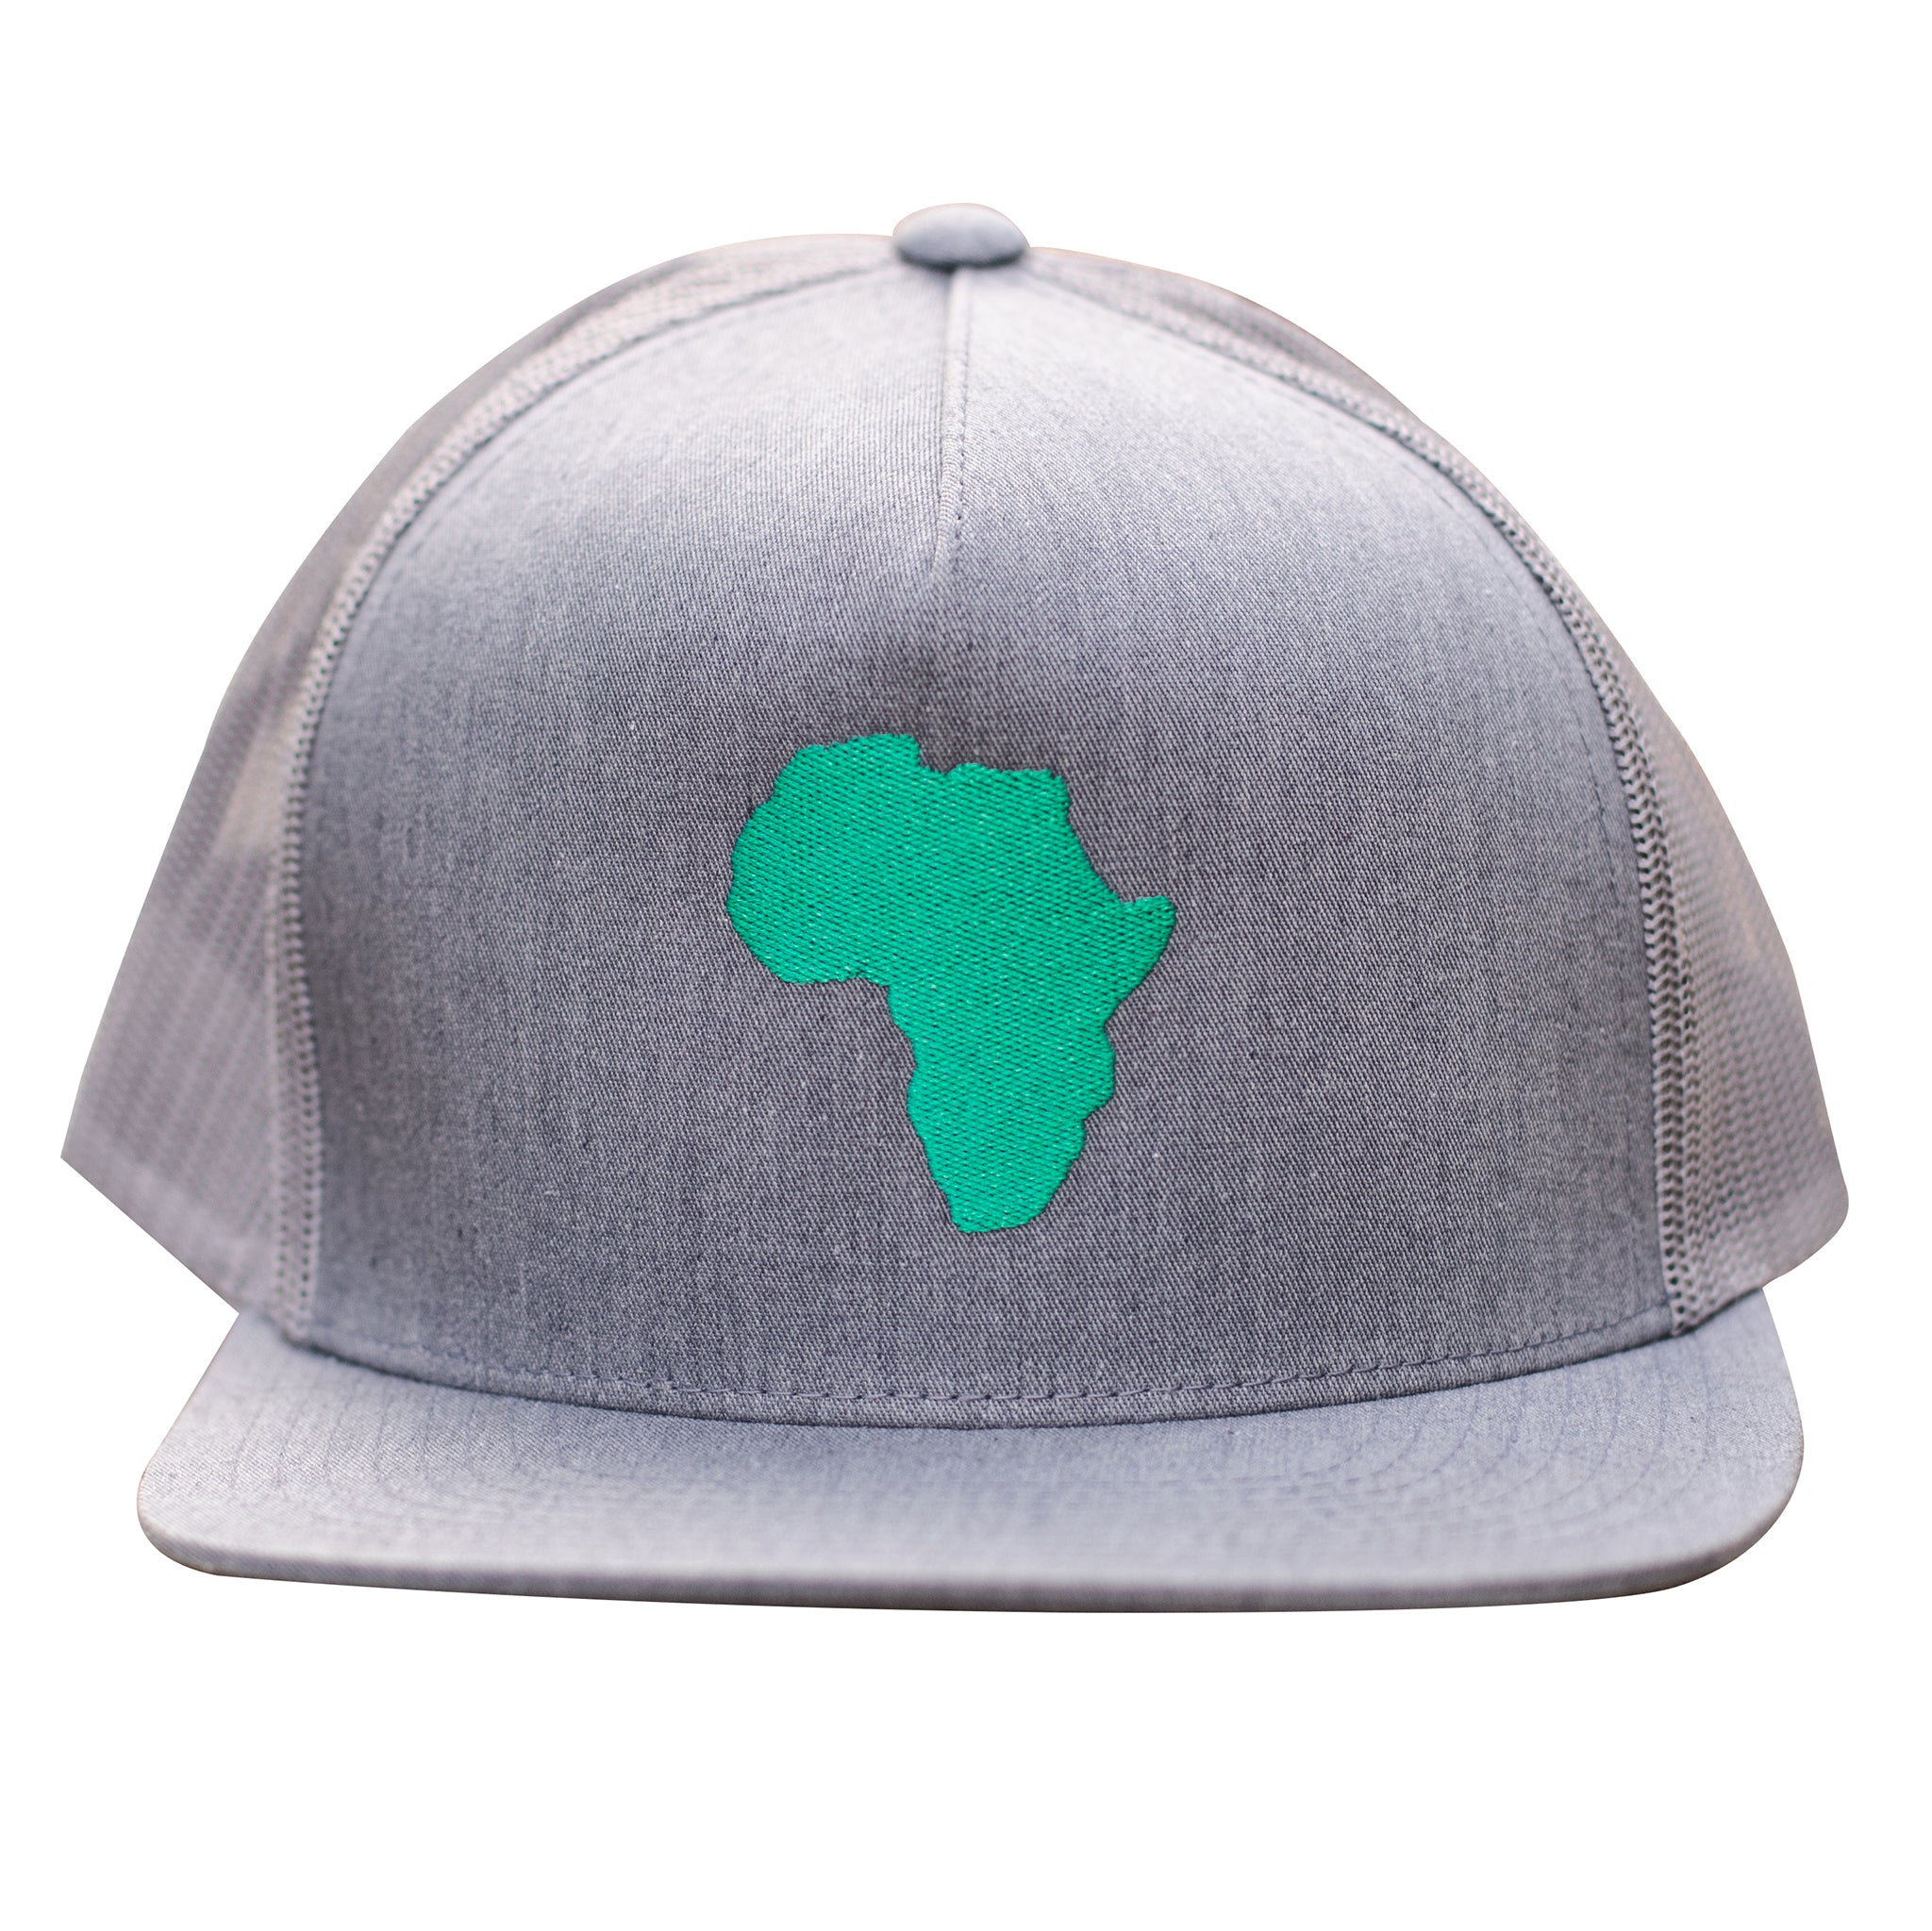 ThisGuy Classic Trucker Cap - Africa (Heather Grey)